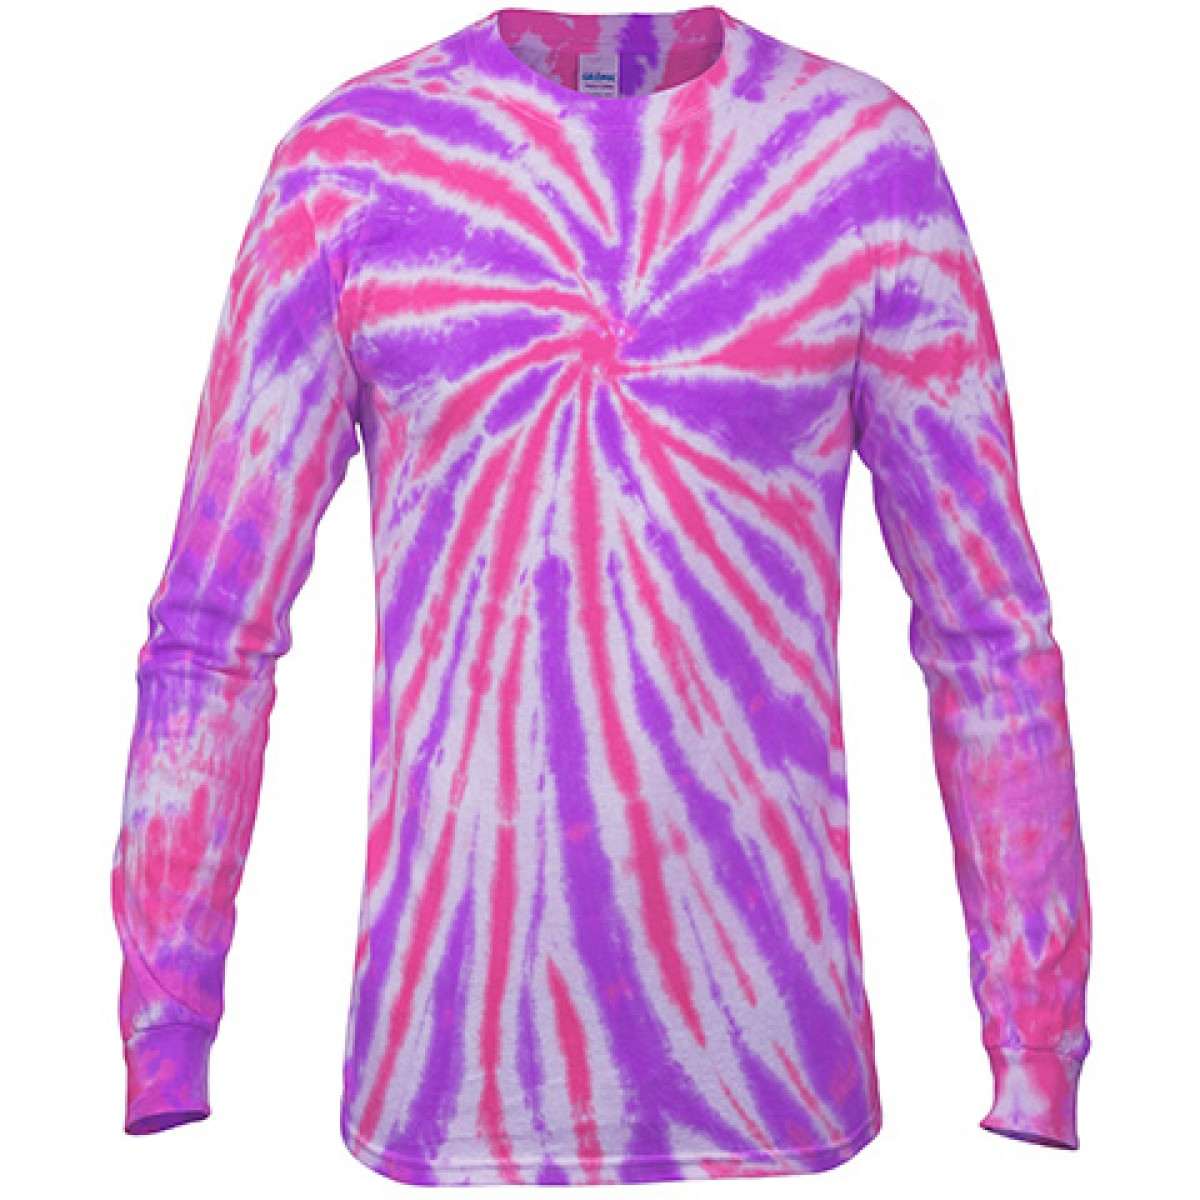 Multi Color Tie-Dye Long Sleeve Shirt -Purple-YM